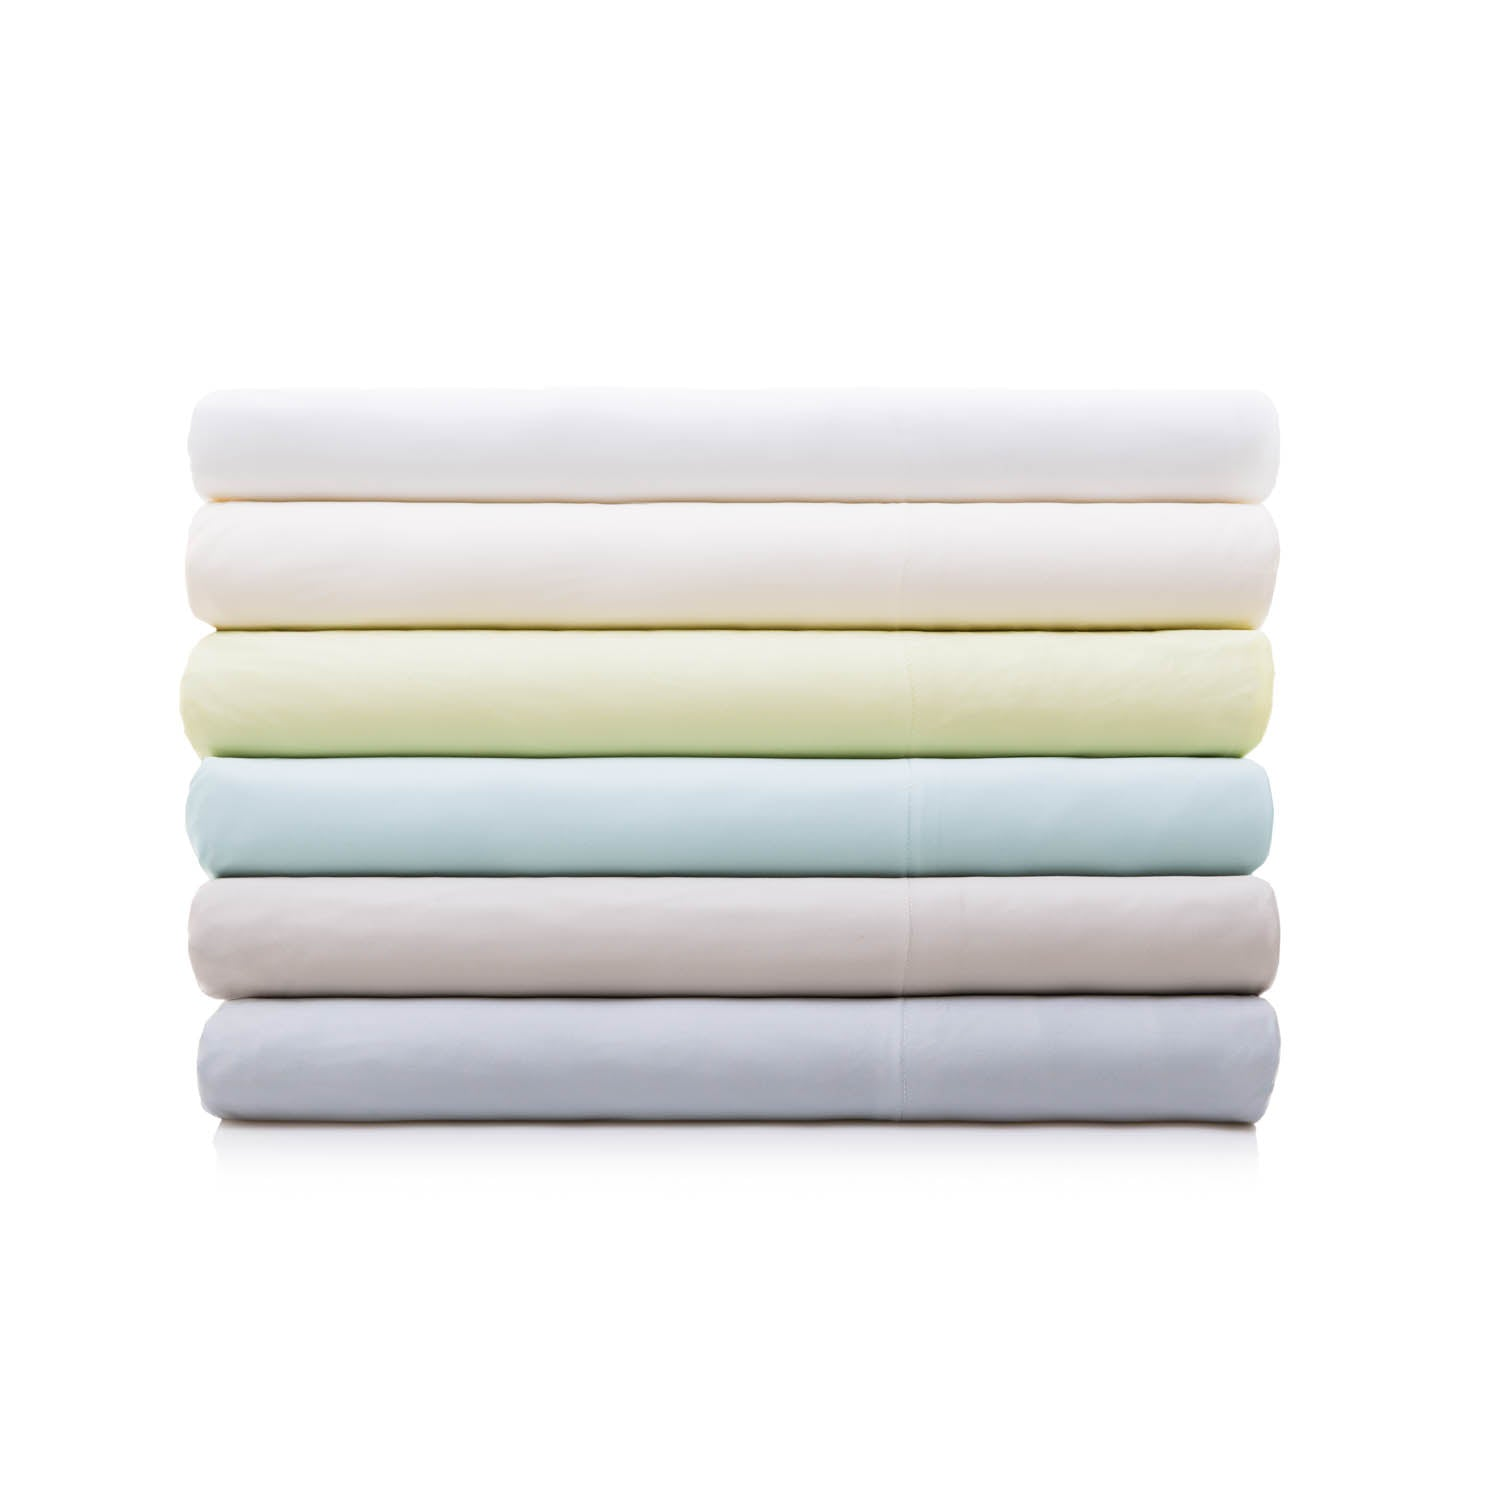 Malouf Woven Rayon From Bamboo Pillowcase